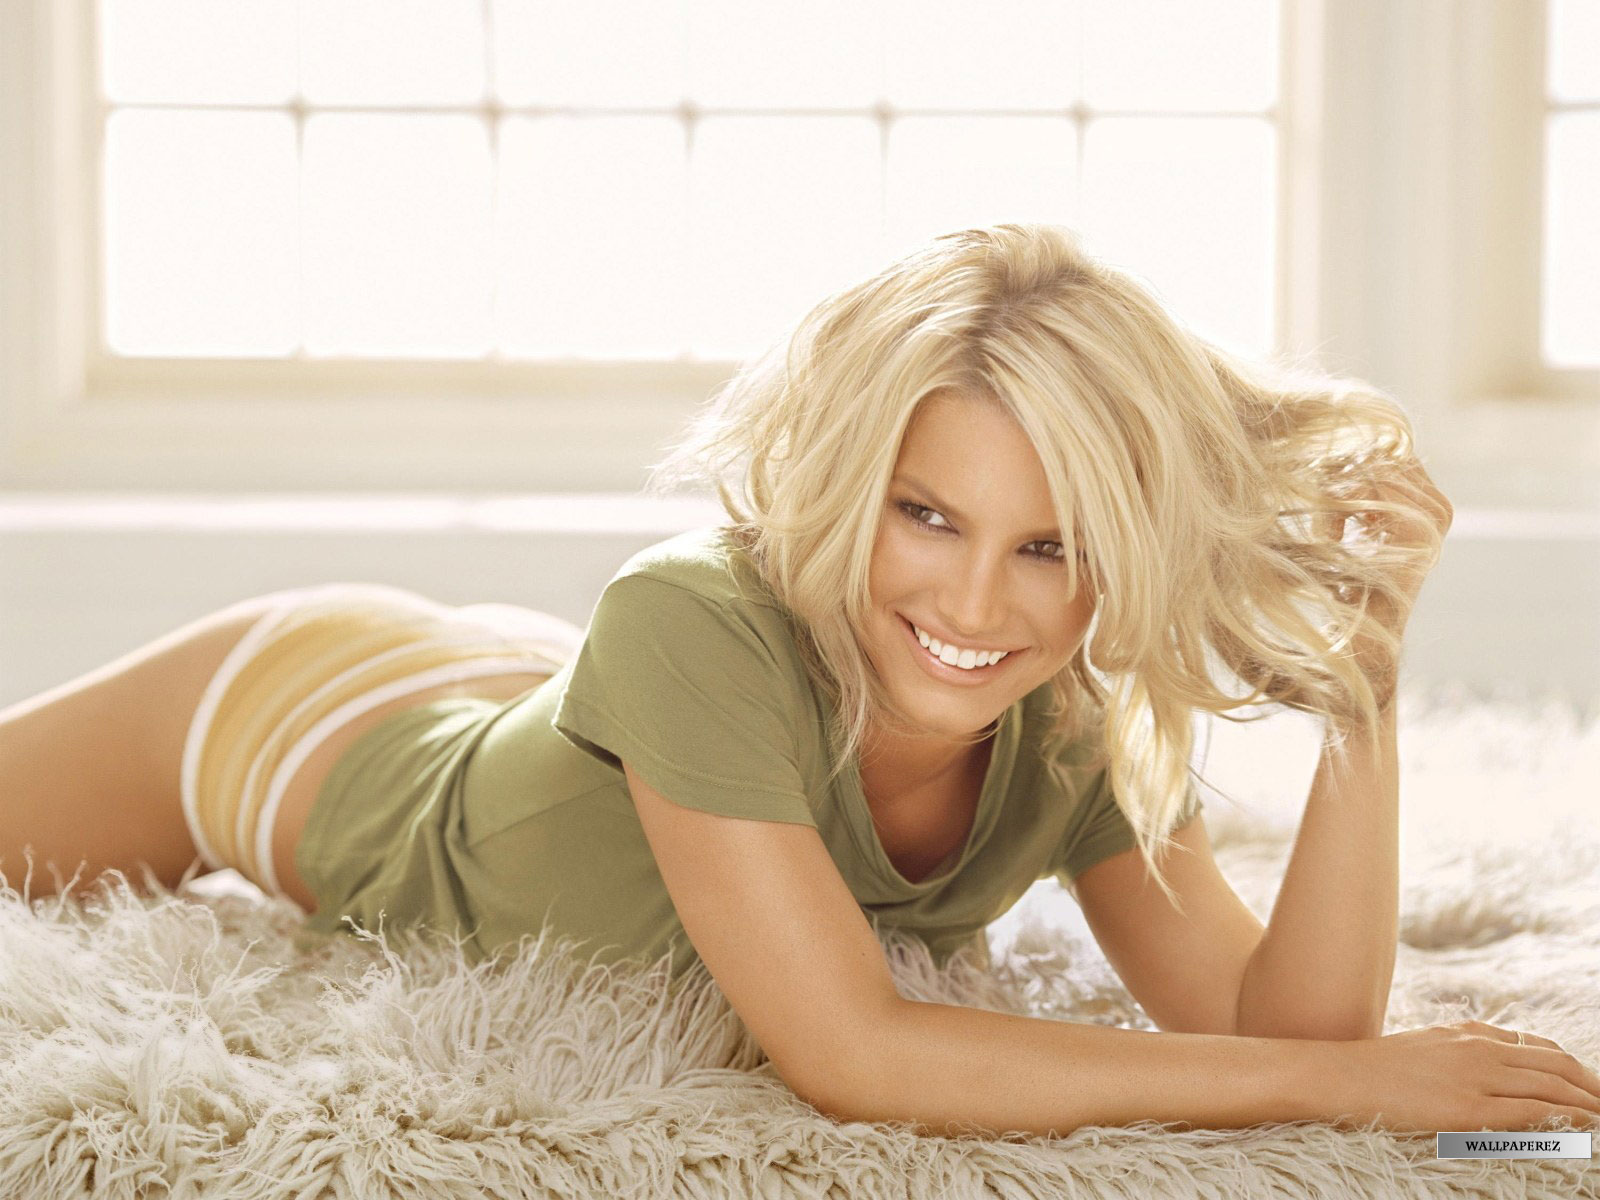 Jessica Simpson very hot 2011